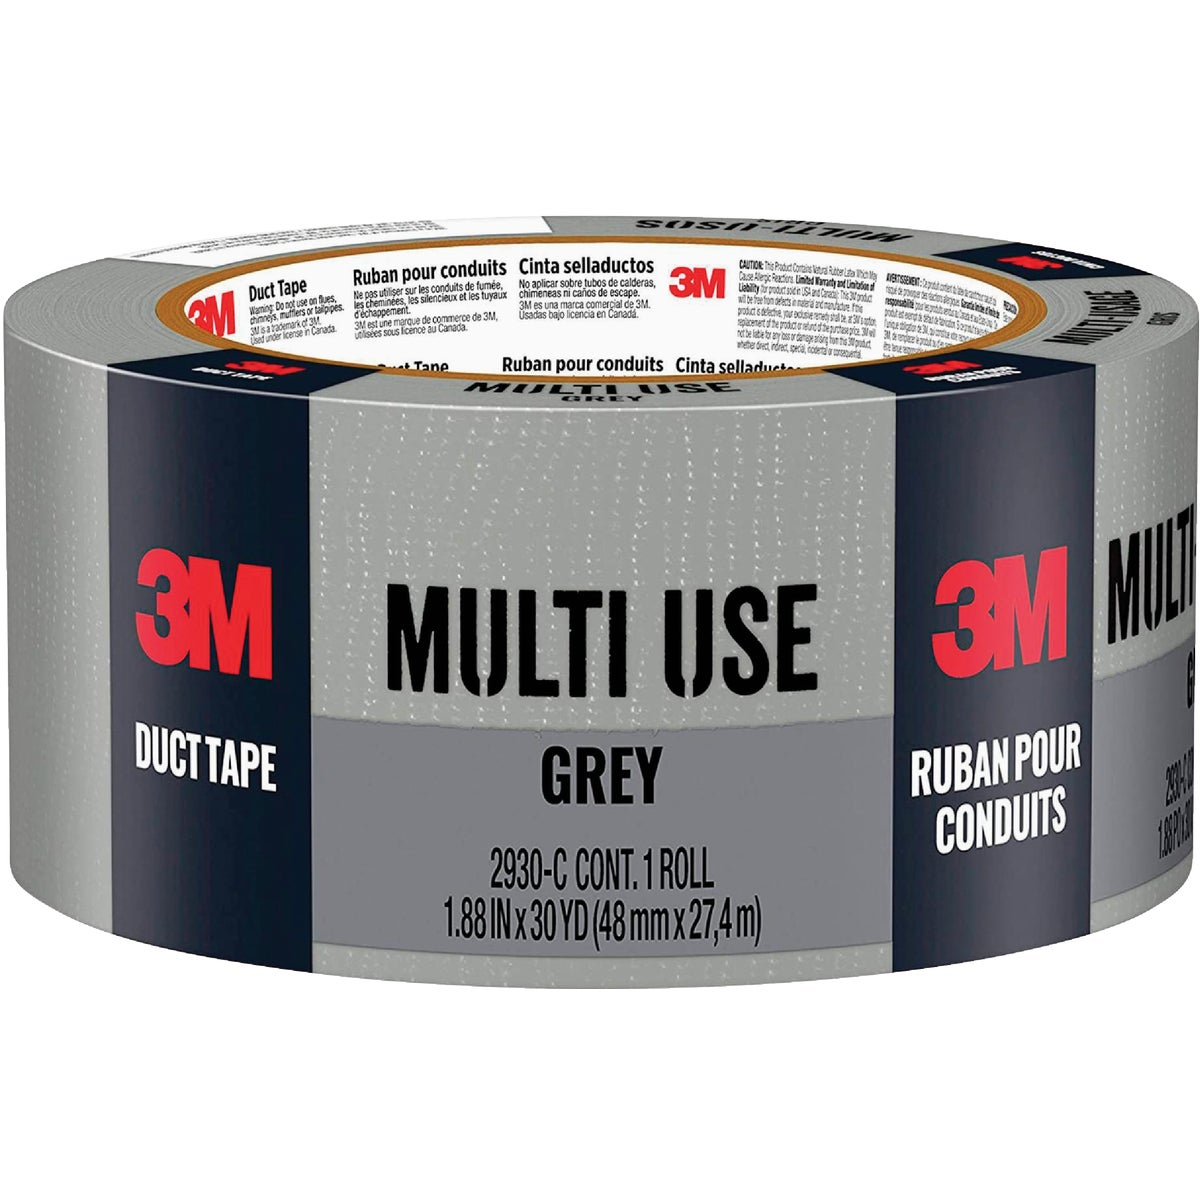 3M 48MMX30YD GRAY DUCT TAPE 1130-A